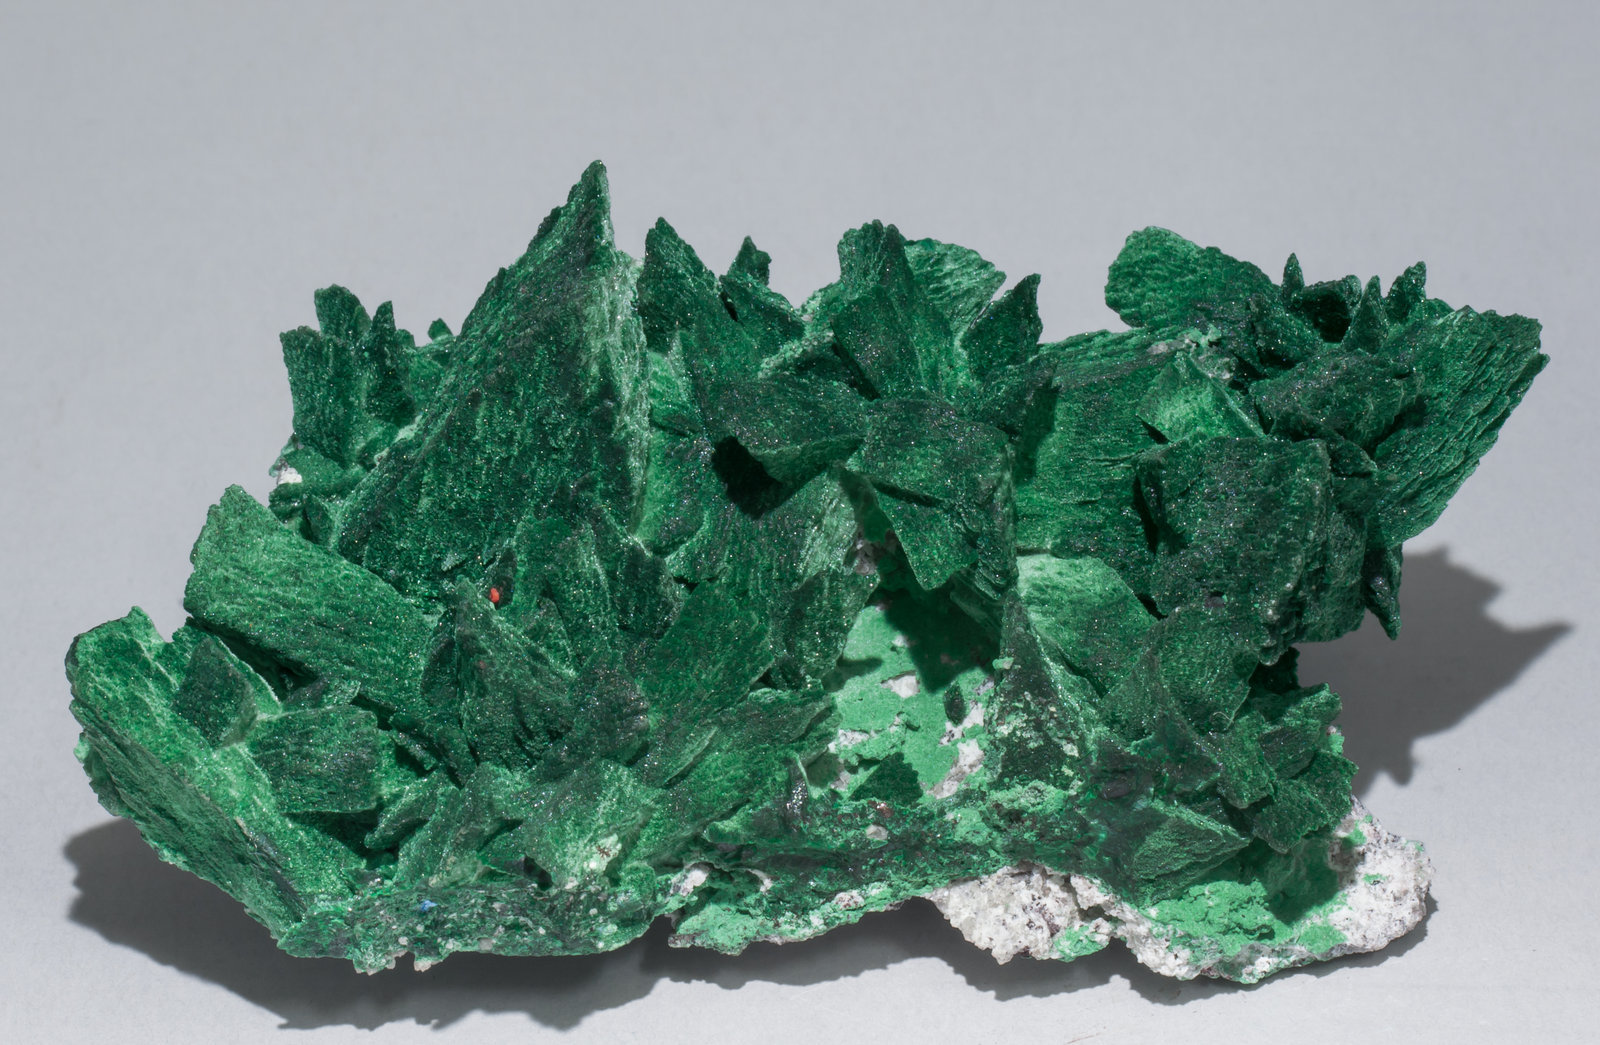 specimens/s_imagesAB3/Malachite-TN78AB3s.jpg